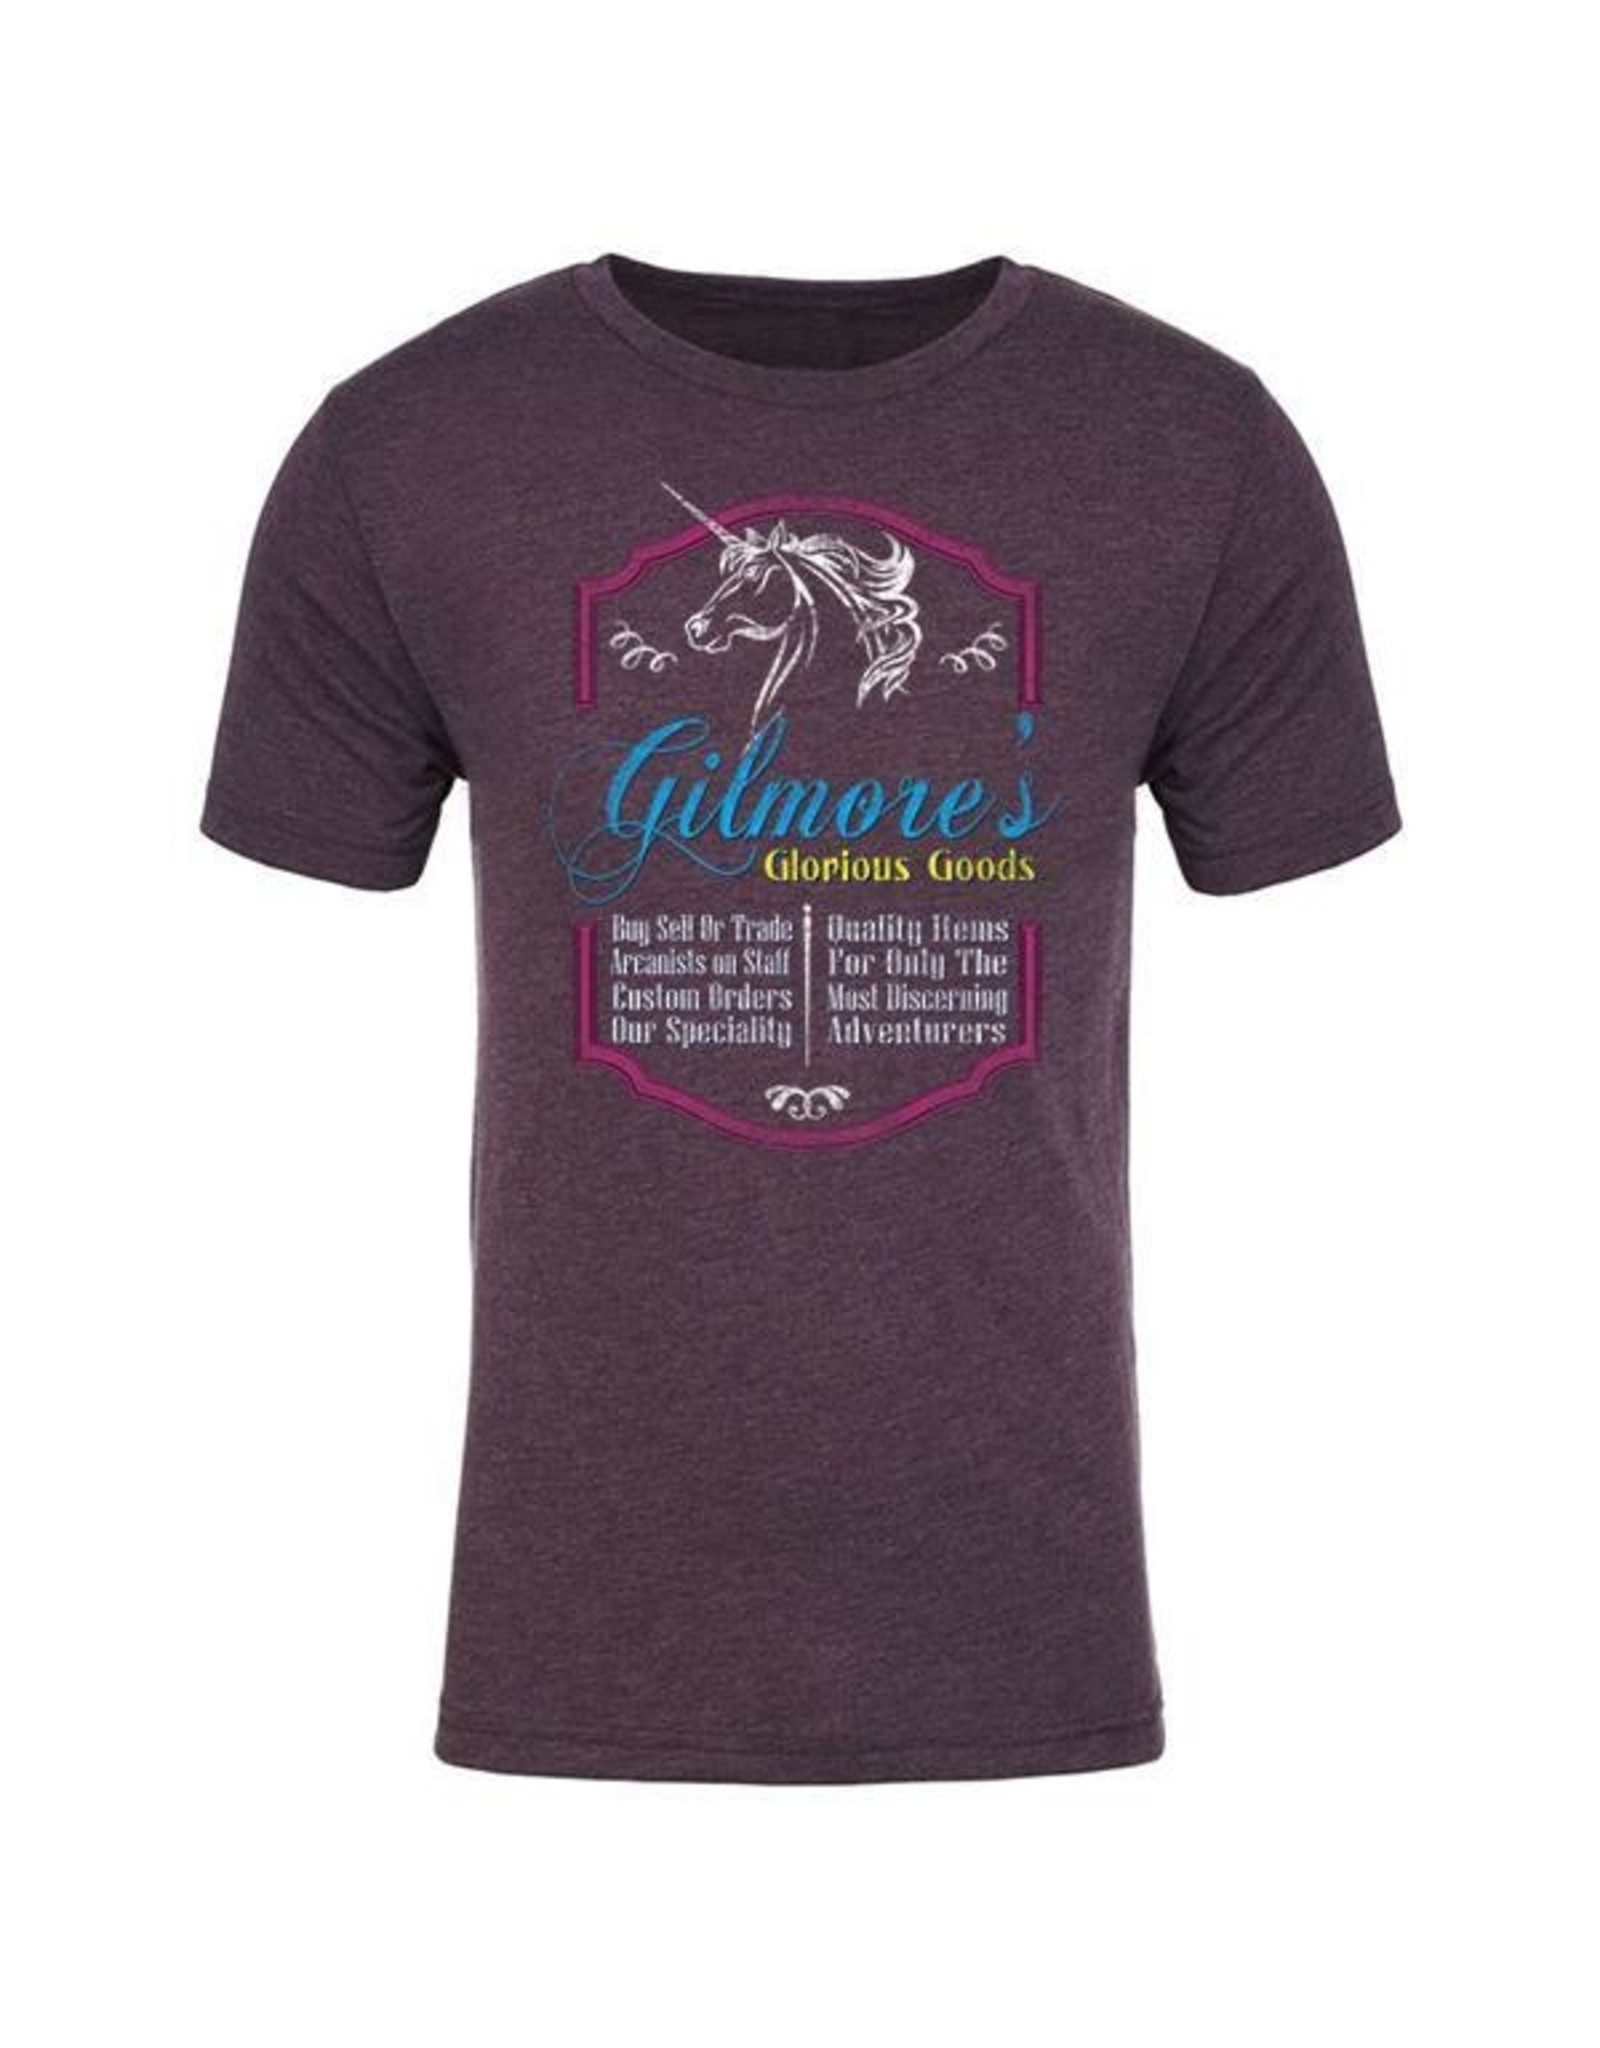 Critical Role Gilmore's Glorious Goods T-Shirt (Large)